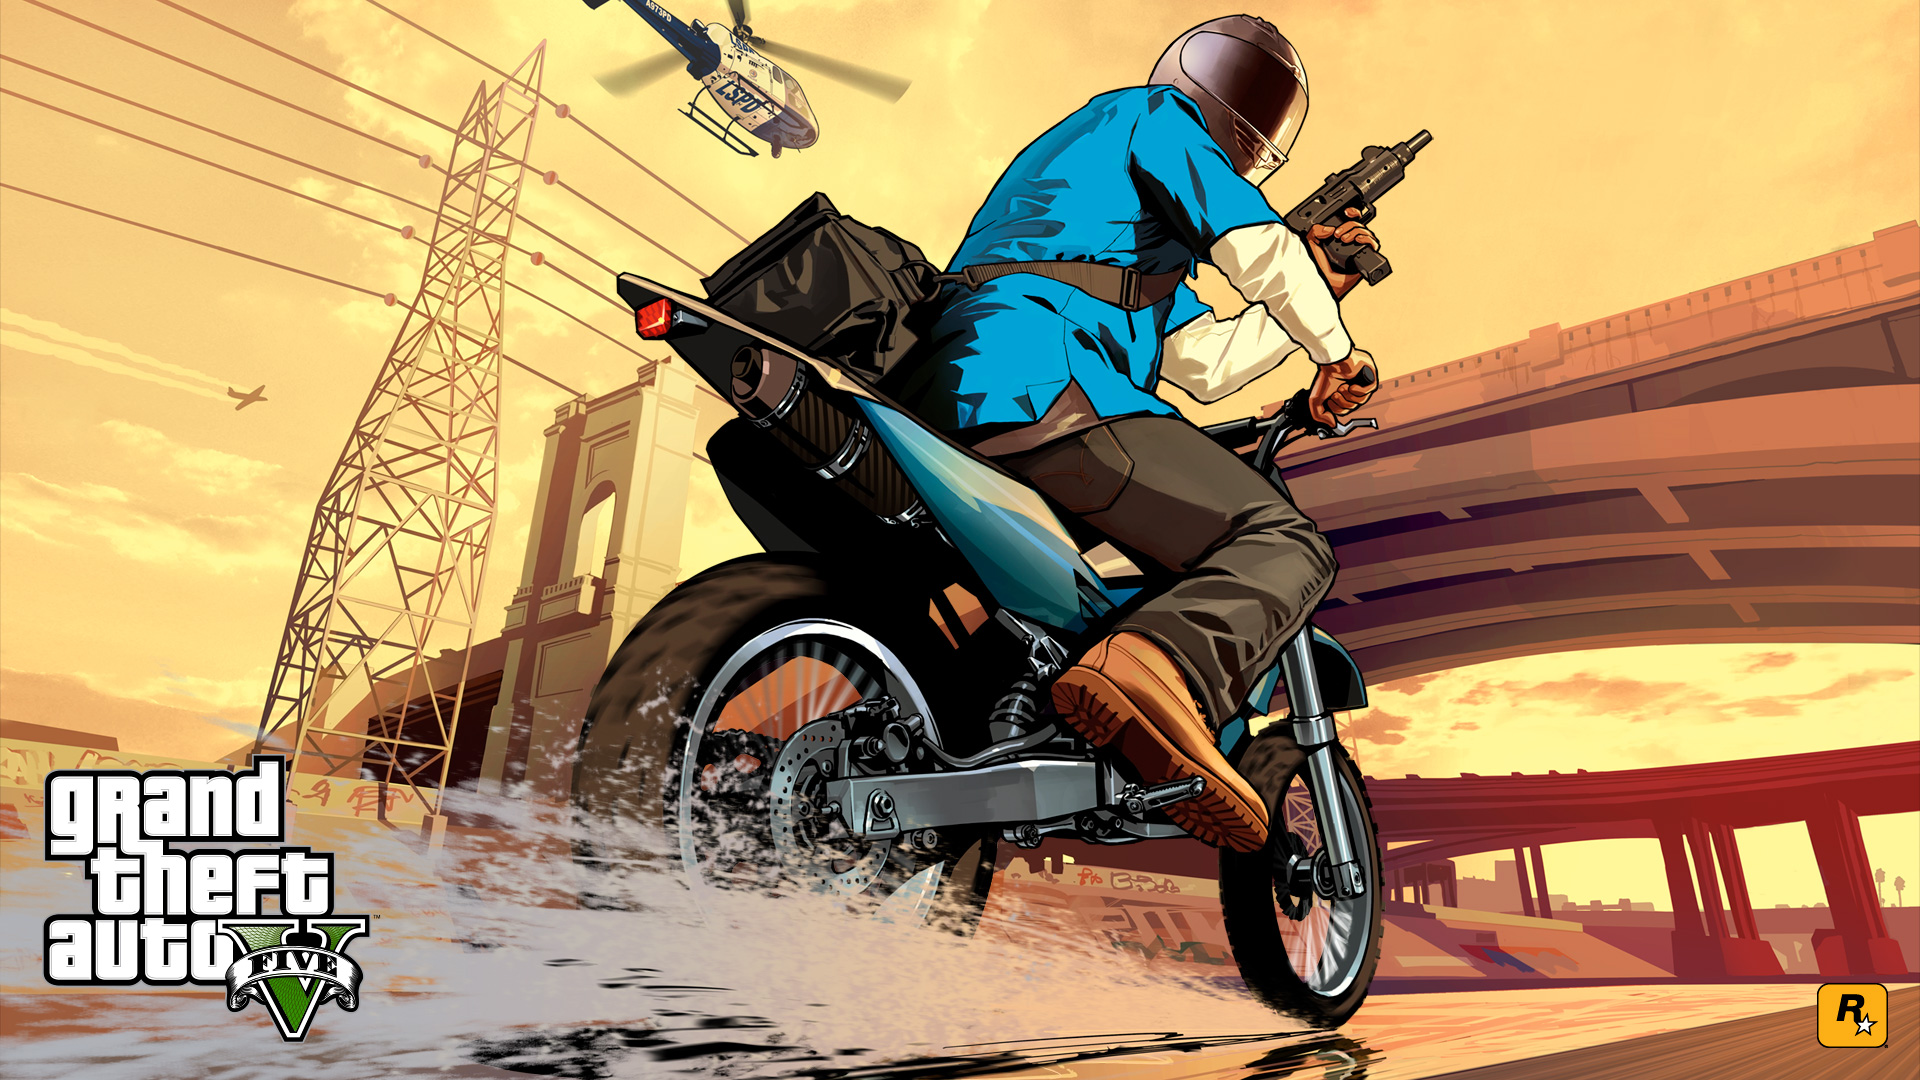 Gta  Franklin_bike_chase_x Wallpaper